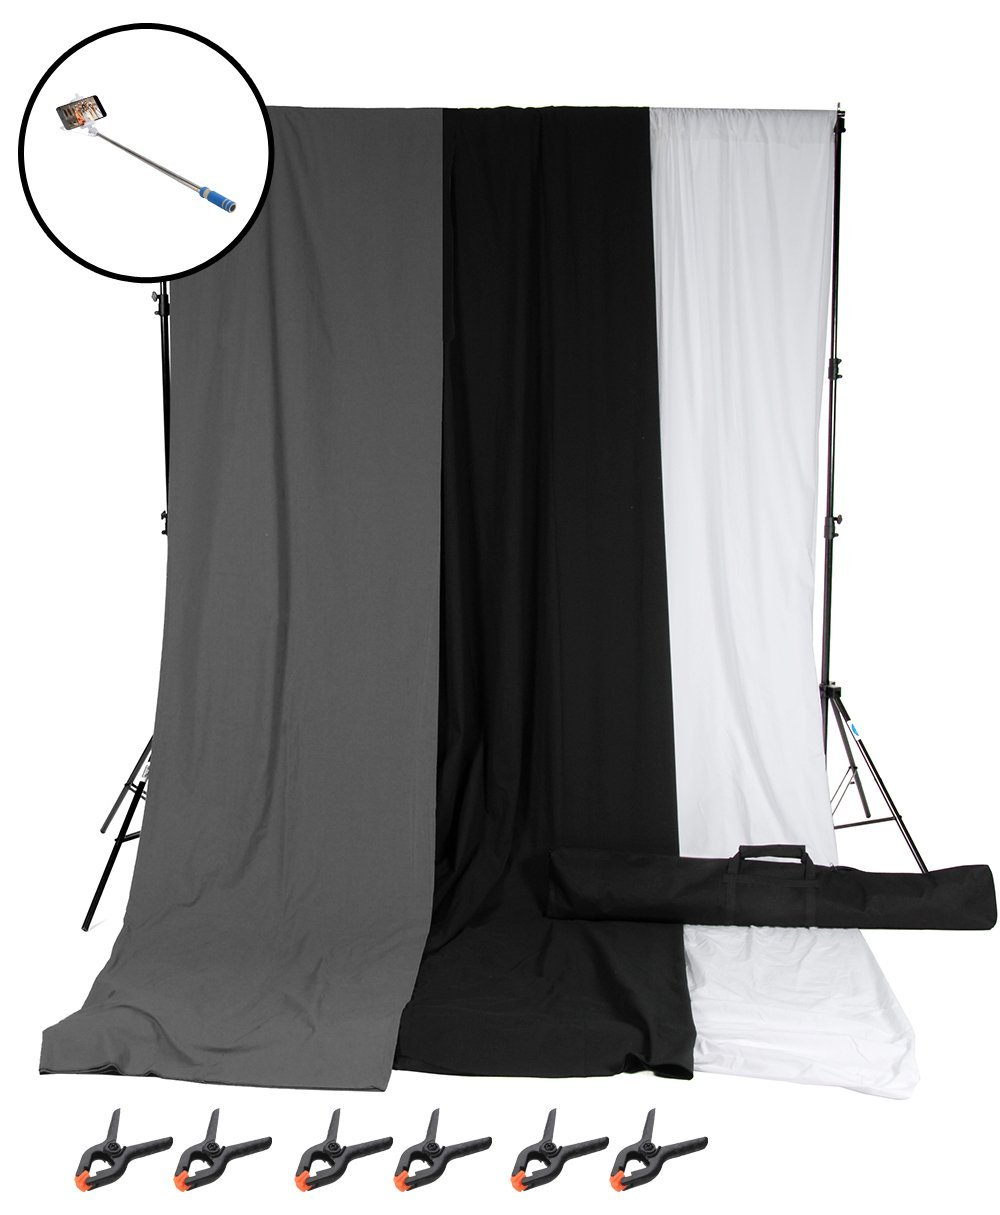 GTAPHOTOSTUDIO 8x10(feet) Photo Video Backdrop Stand + 3pc 6x9(feet) Backdrop Set (White, Grey, Black) w/ 6pc Clamps